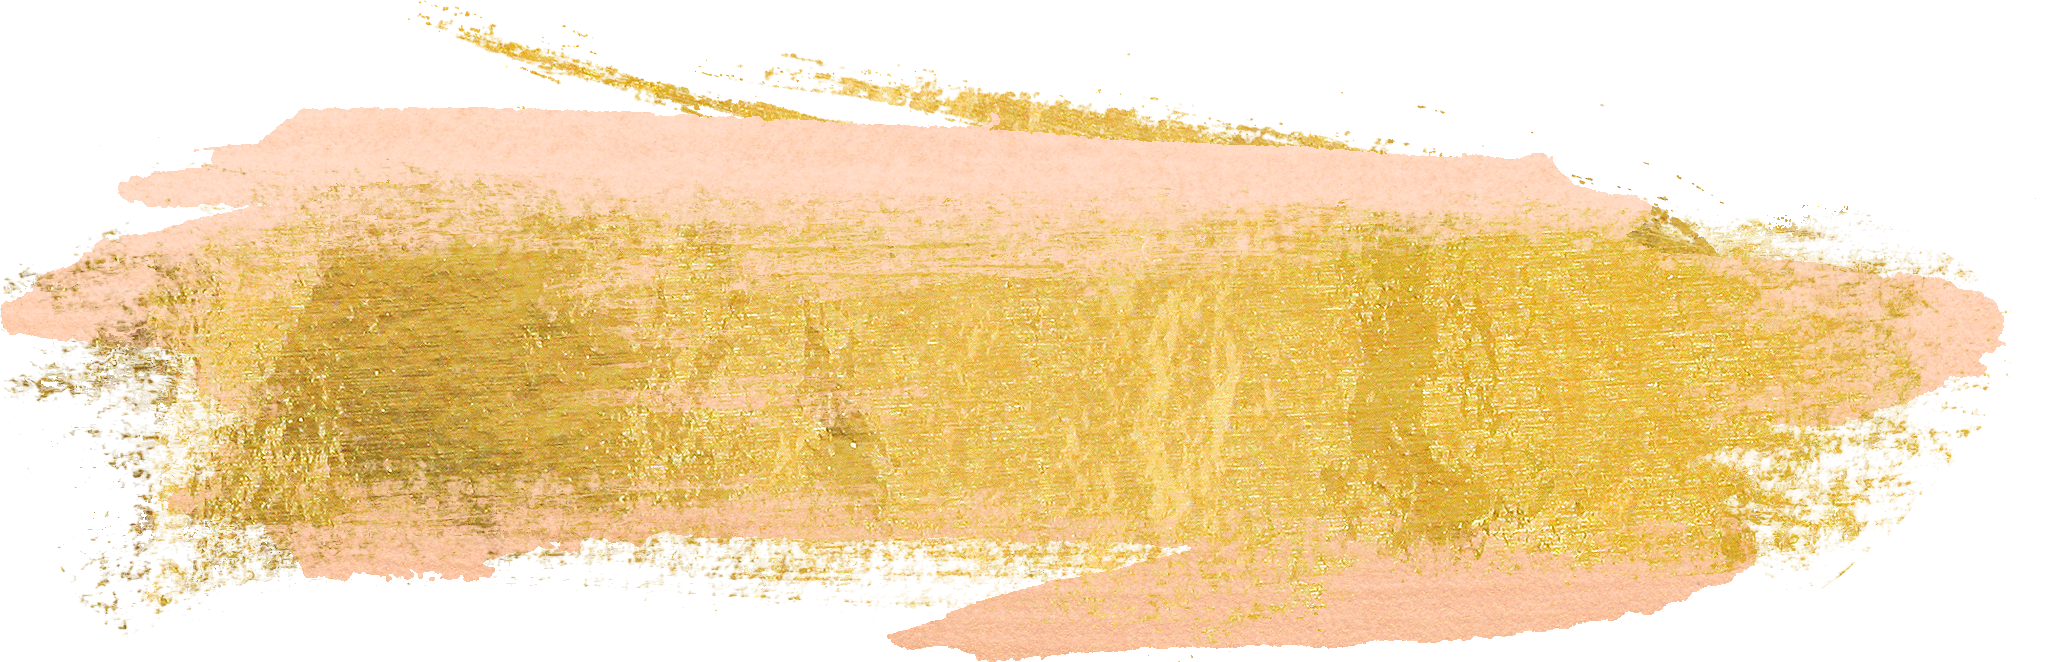 Gold brush stroke clipart free clip art freeuse download Free Gold Paint Brush Strokes -CU ok! - Free Pretty Things For You clip art freeuse download